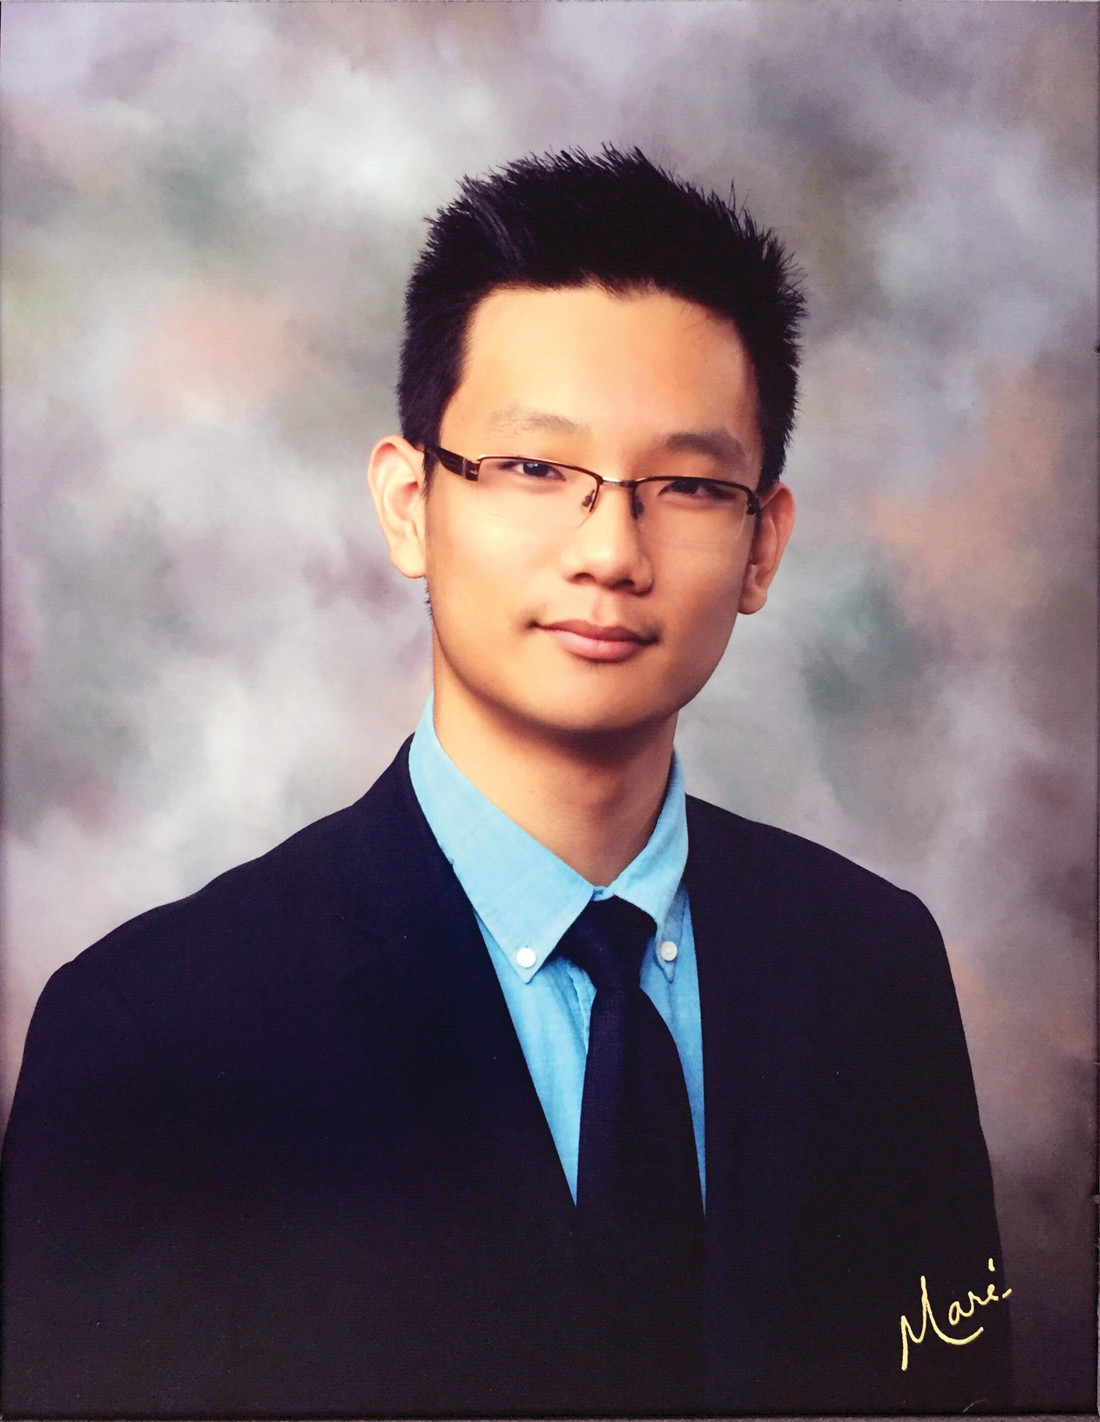 Frederick Choi ranked number 3 in his class, while also showing leadership in his school community by being the Captain of both Math Team and Programming Team, and the Head Programmer for the Robotics Team. He also played the viola in the Hendricken Orchestra, the RI Philharmonic Youth Orchestra, and All-State Orchestra.